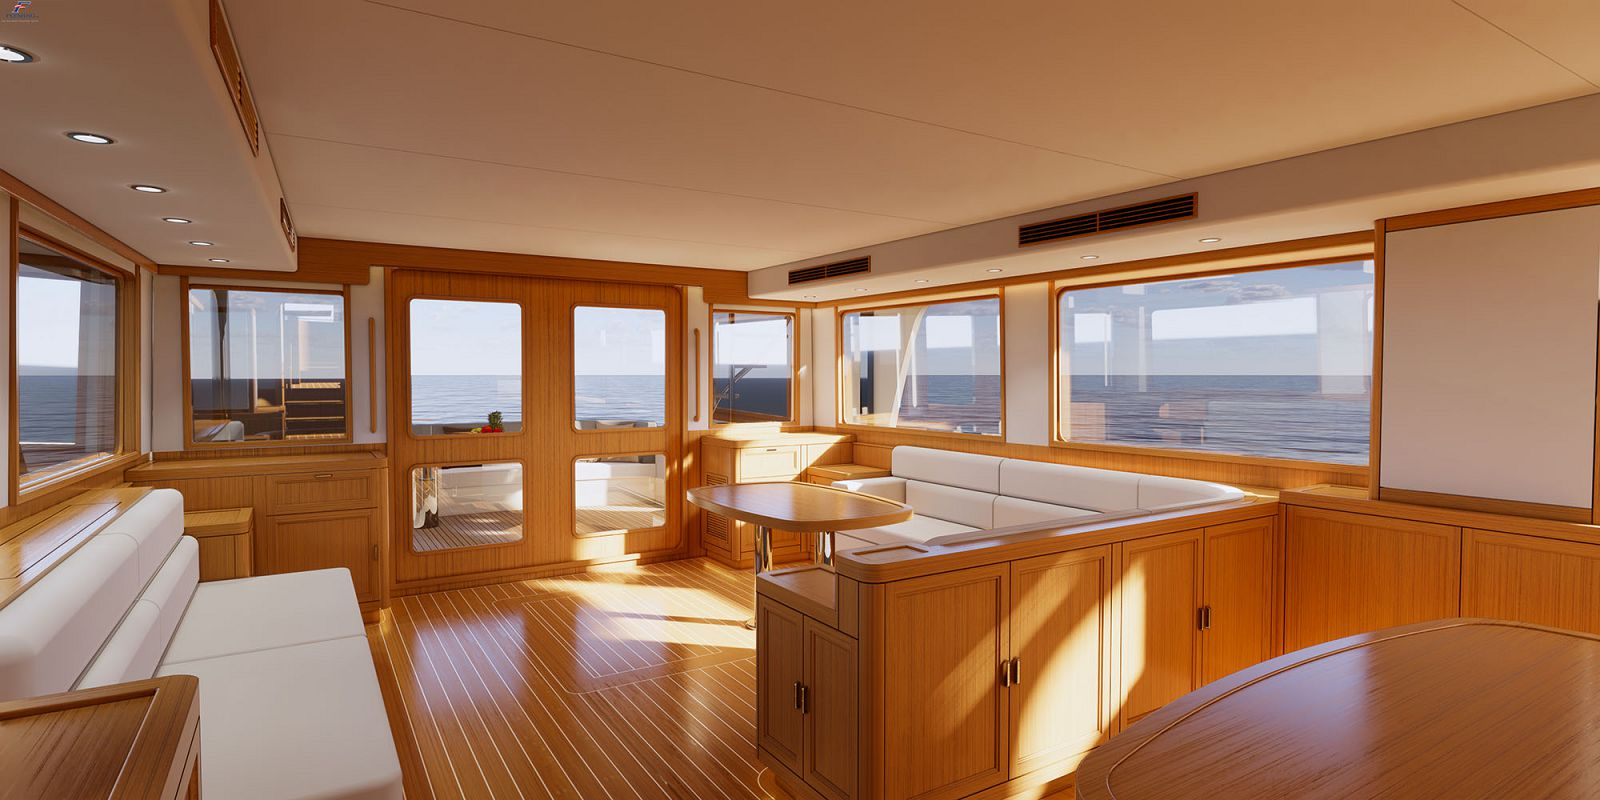 Interior of the Fleming F85 with both the kitchen and living area pictured